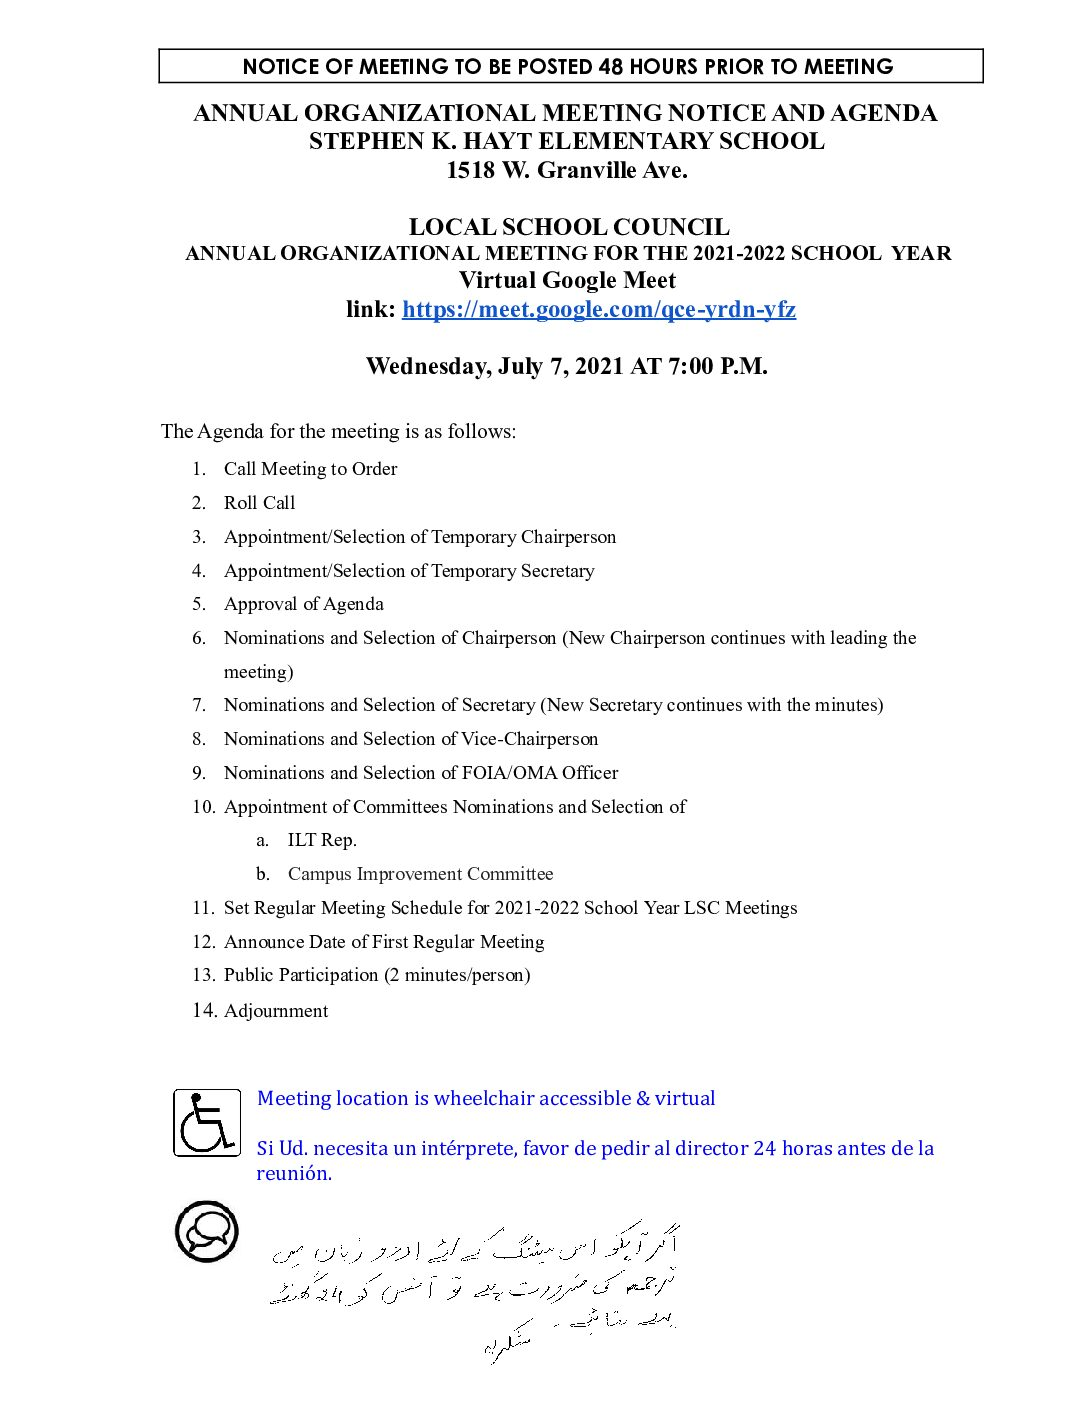 Wednesday July 7th, 2021 – Local School Council Monthly Meeting Agenda